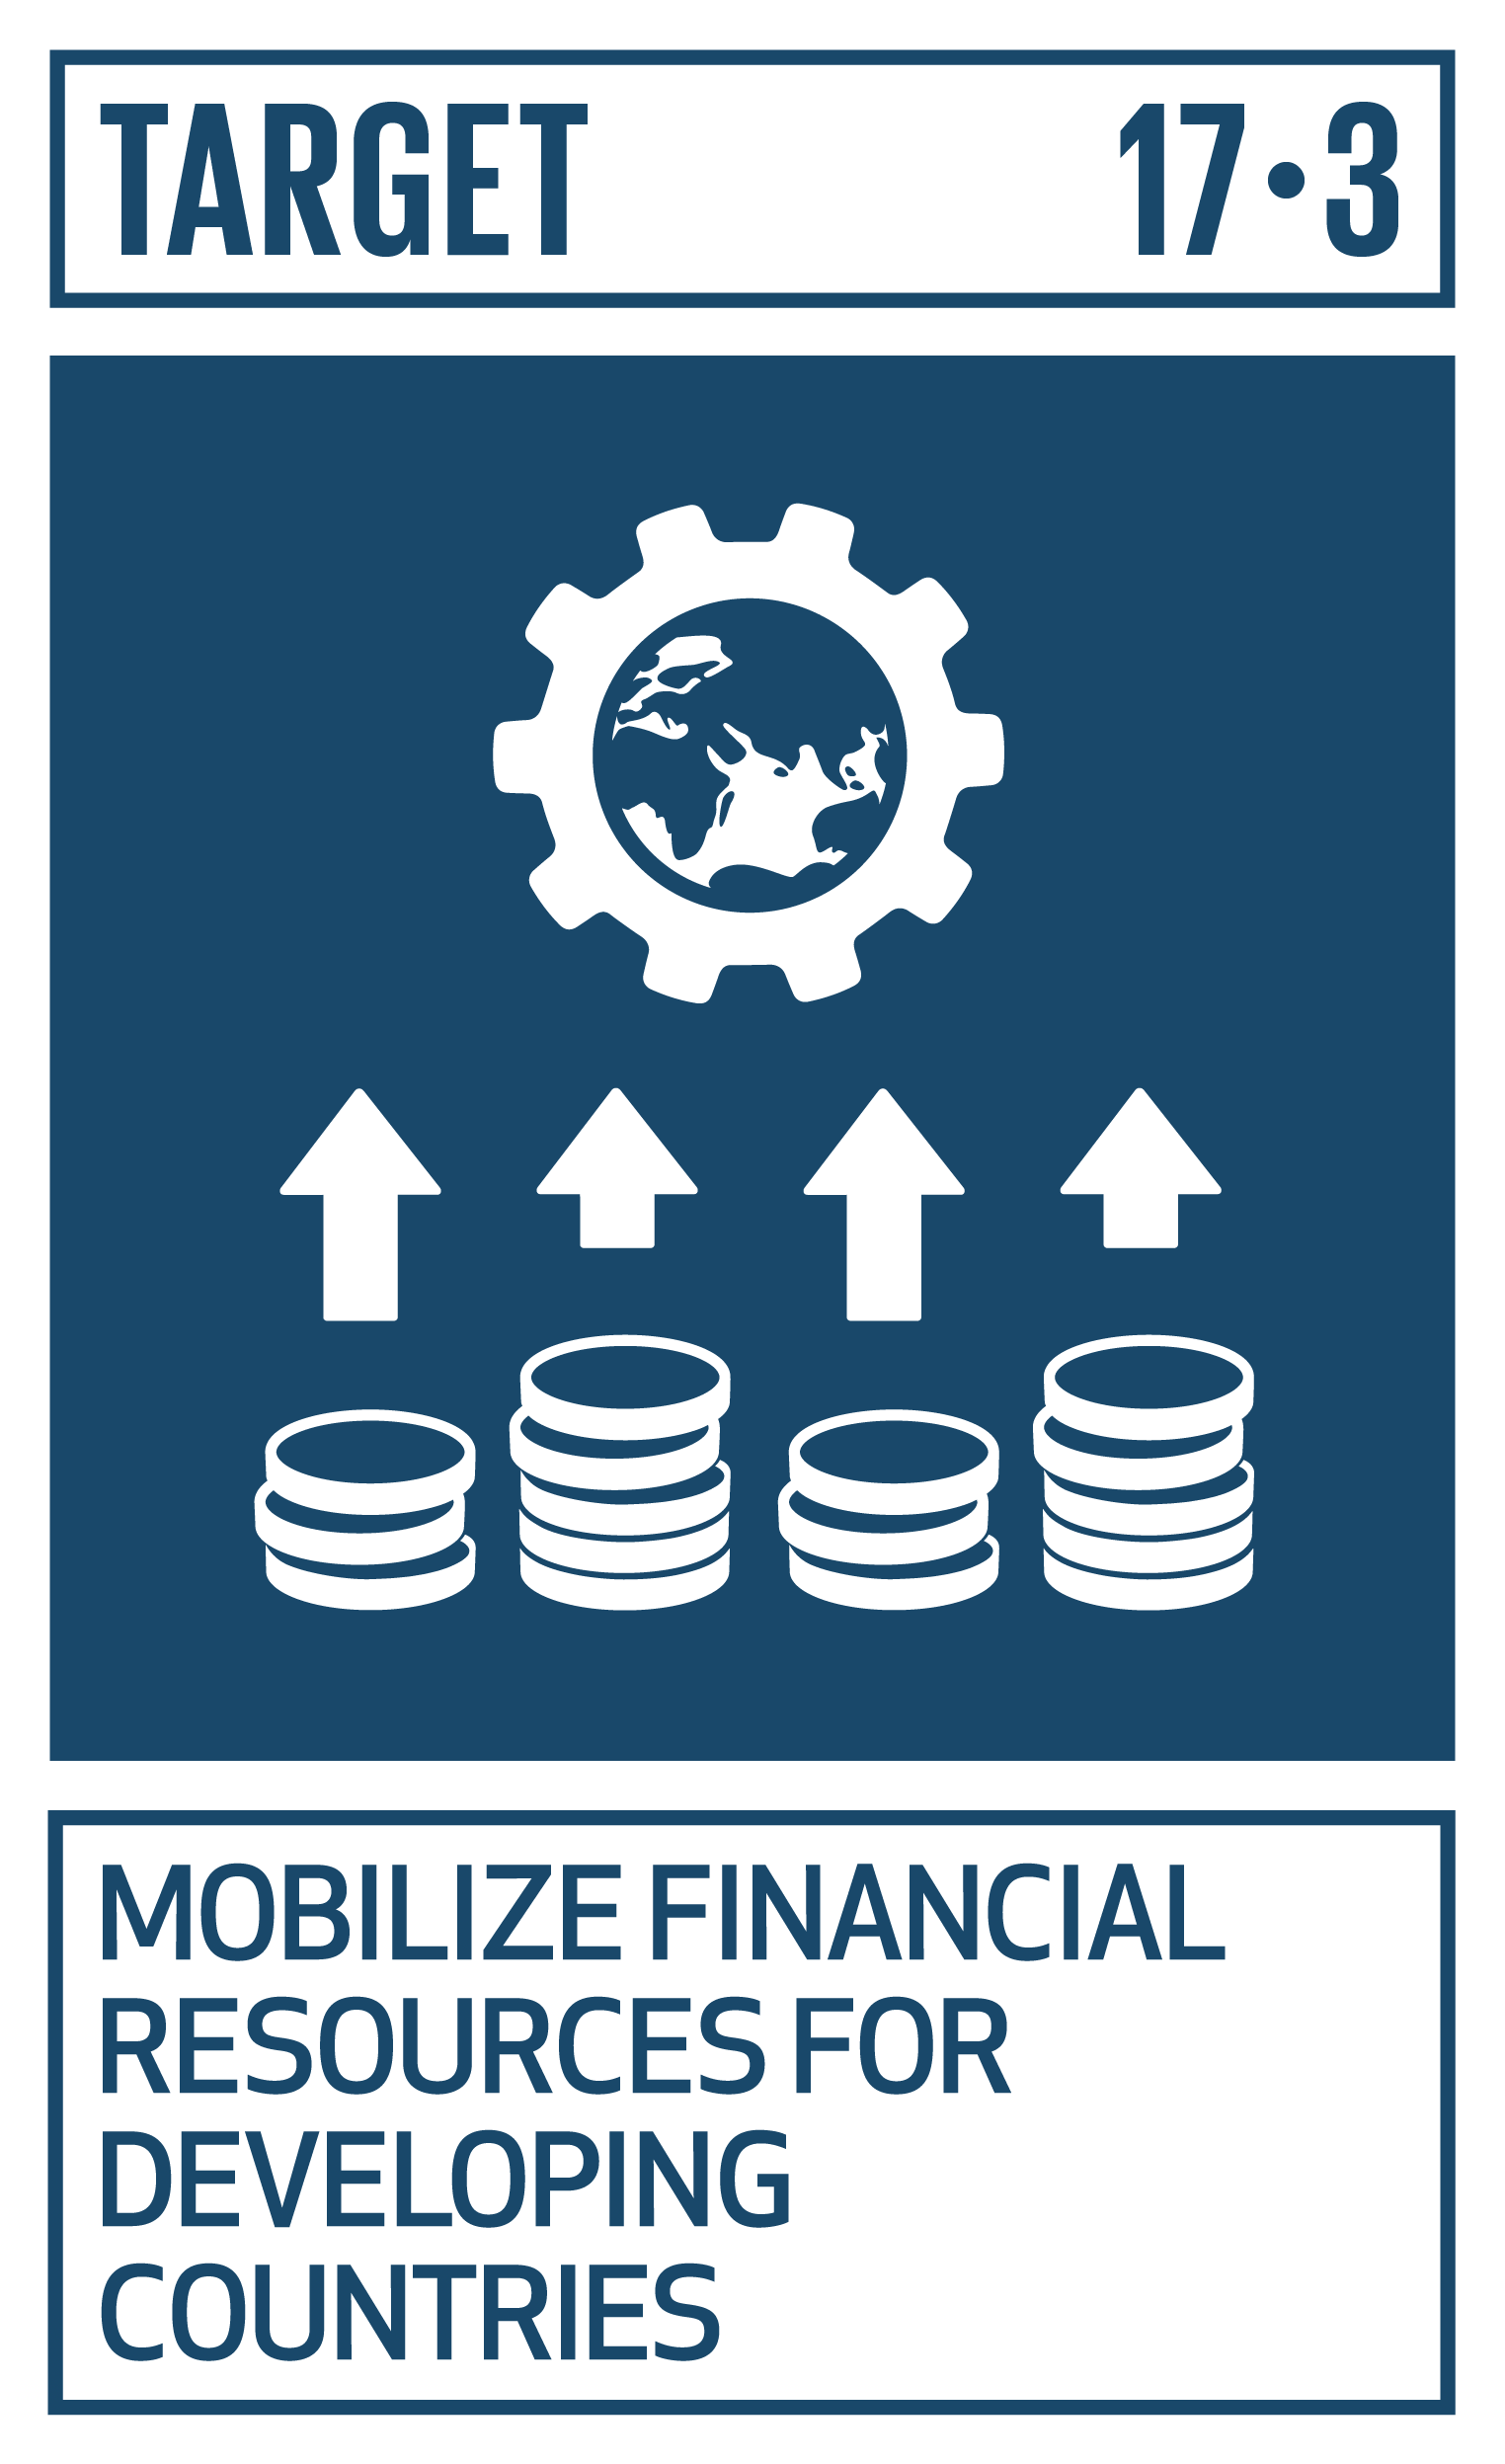 FINANCE TARGET   Mobilize additional financial resources for developing countries from multiple sources.   INDICATORS    17.3.1  Foreign direct investment (FDI), official development assistance and South-South cooperation as a proportion of total domestic budget   17.3.2  Volume of remittances (in United States dollars) as a proportion of total GDP